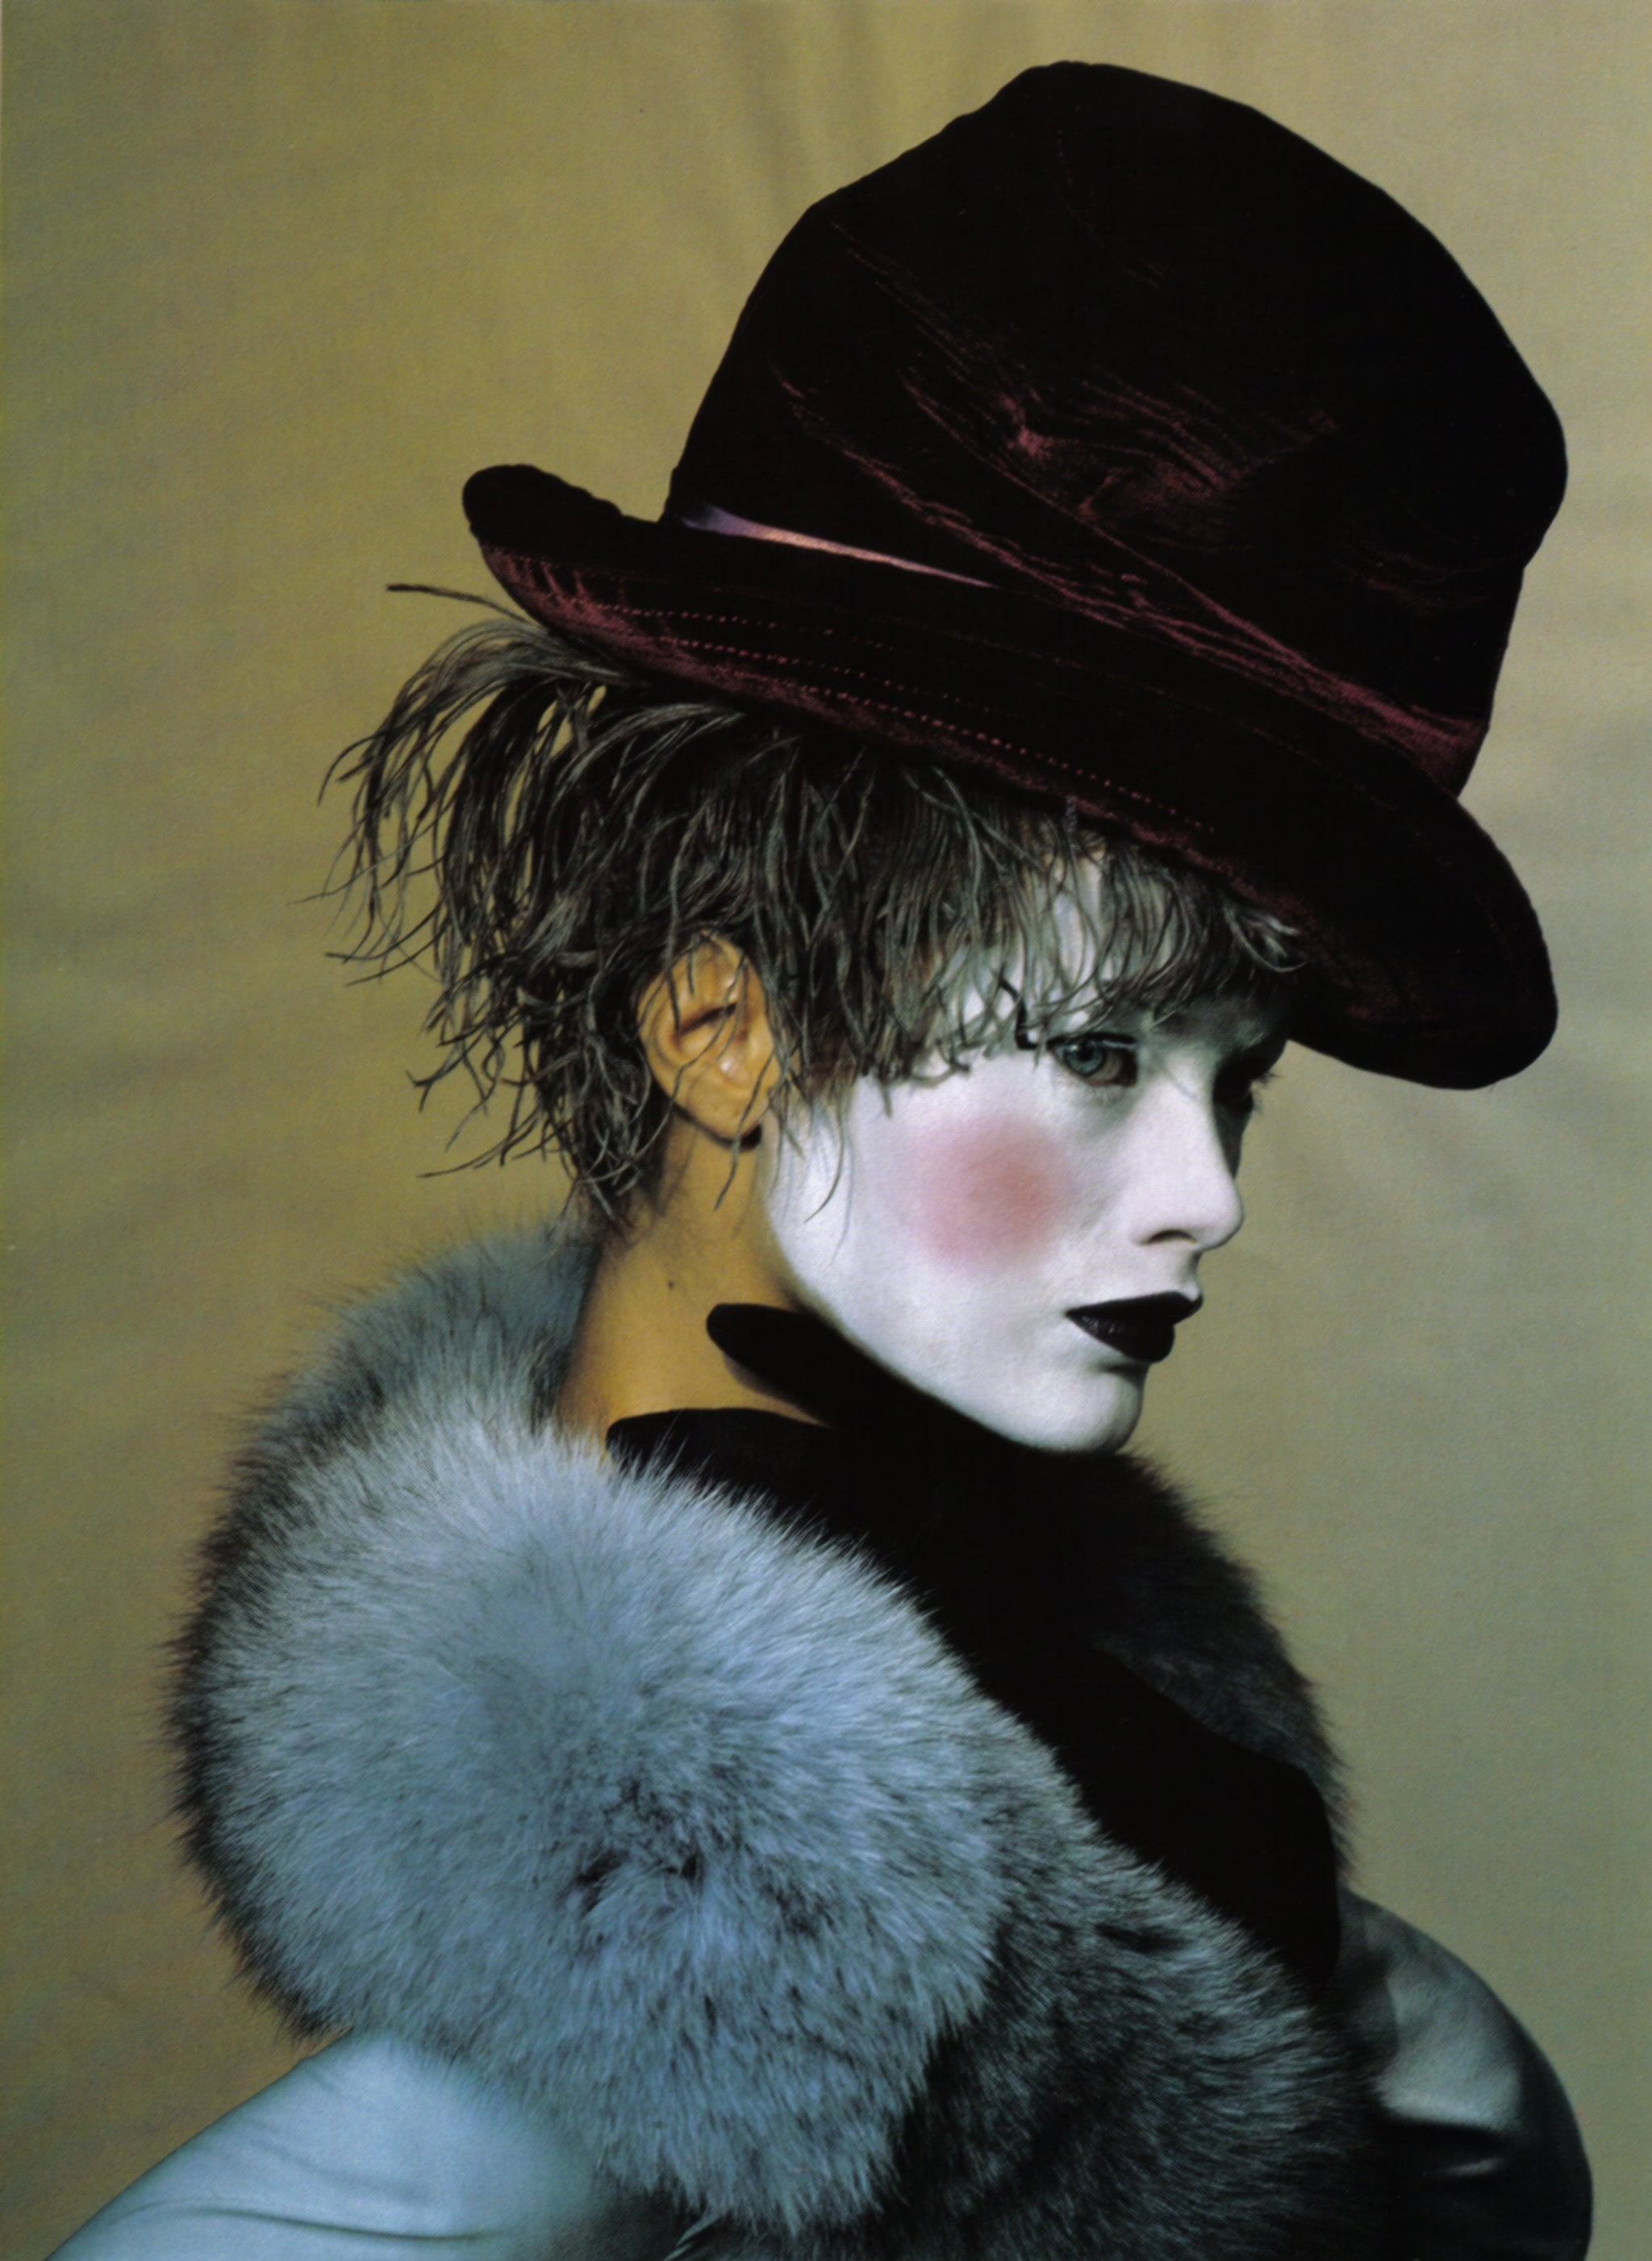 Black Hat and White Face, New York, (Carolyn Murphy), Vogue, June 24, 1997